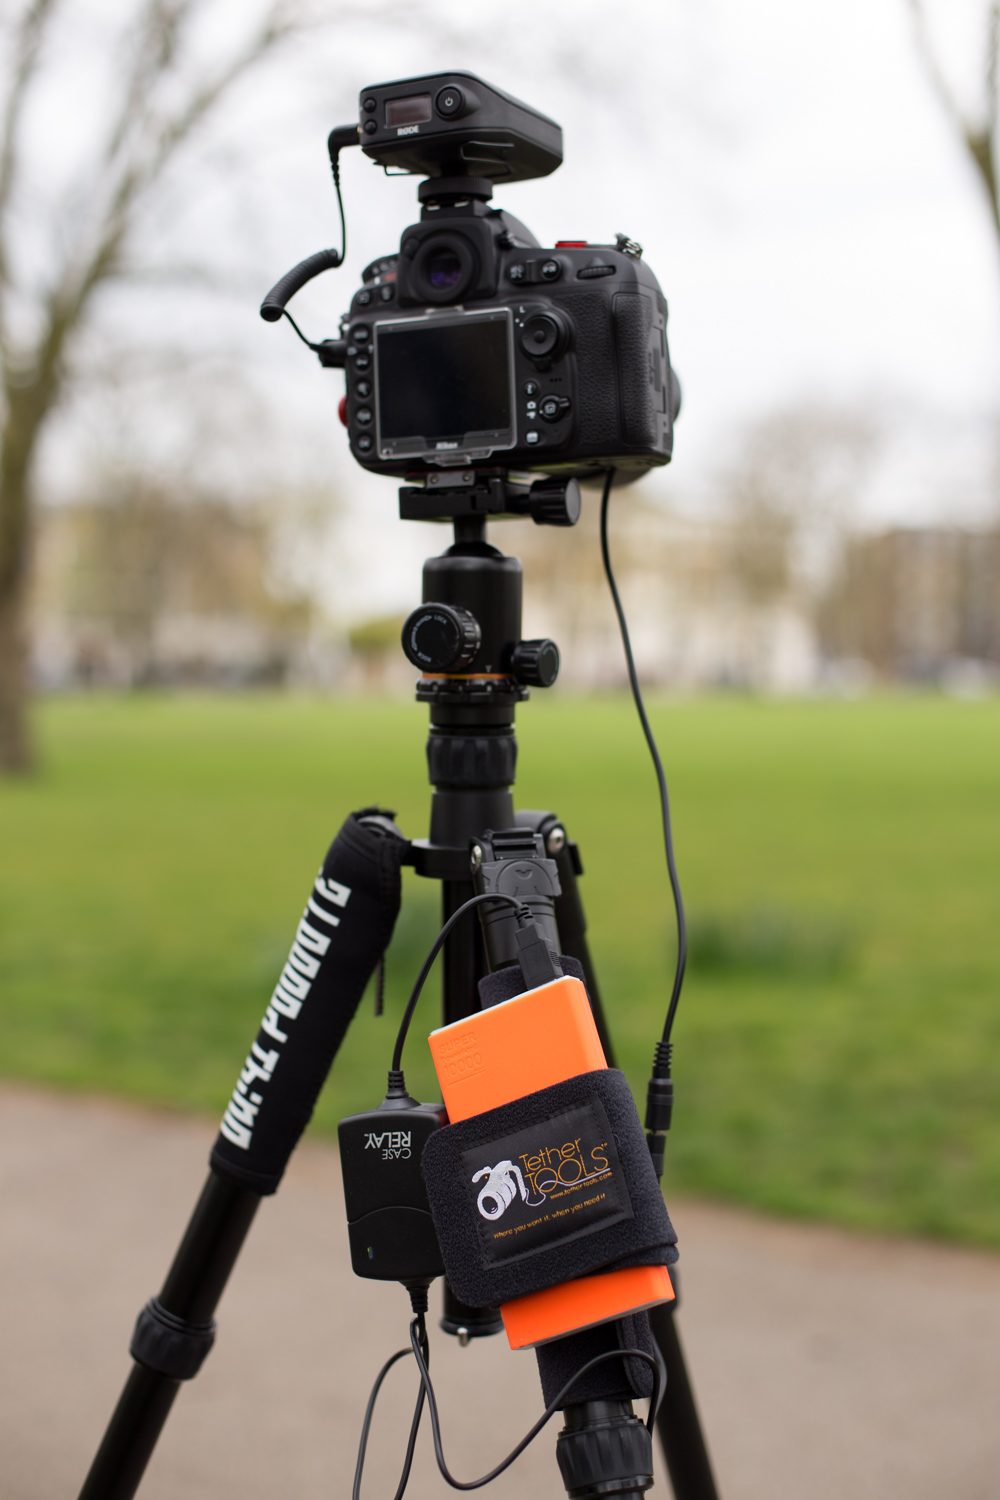 The Tether Tools Case Relay powering up our camera for a video shoot!